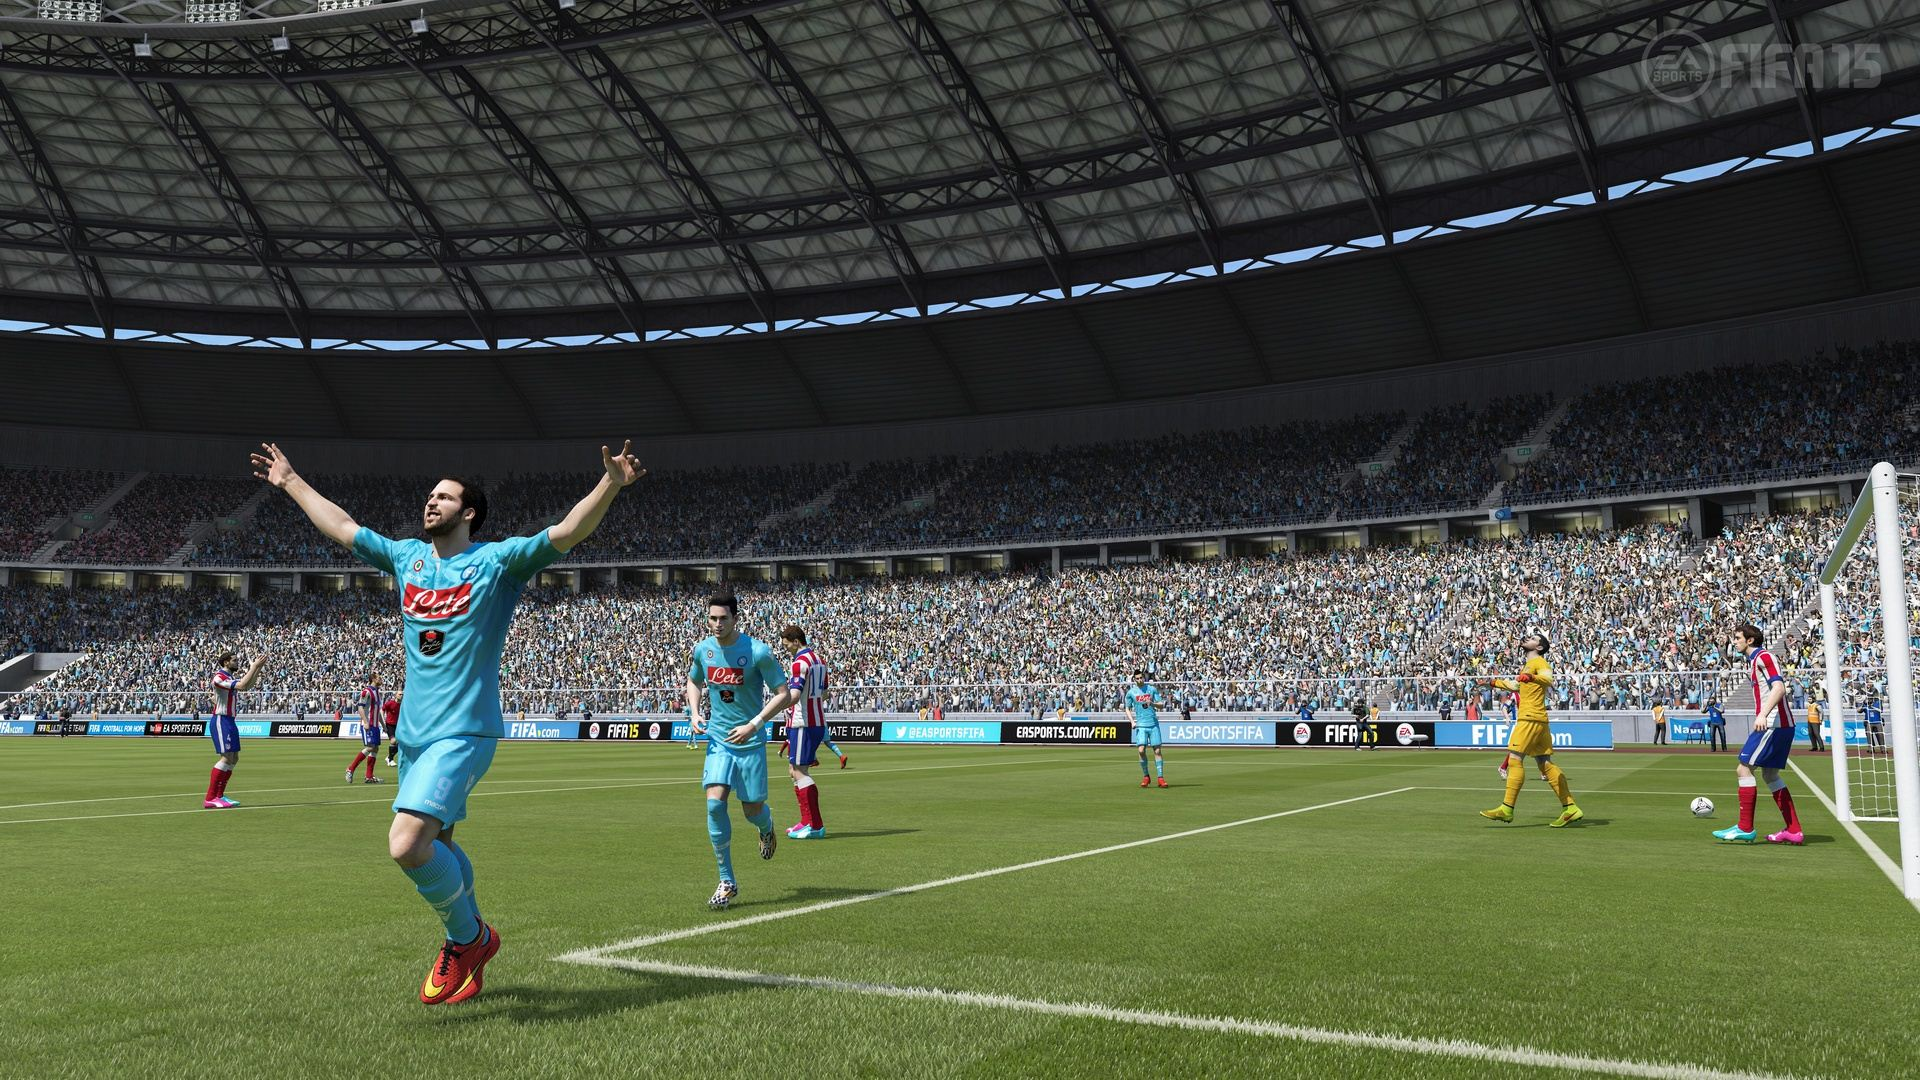 Fifa 15 receives new gameplay footage career mode details and ps4